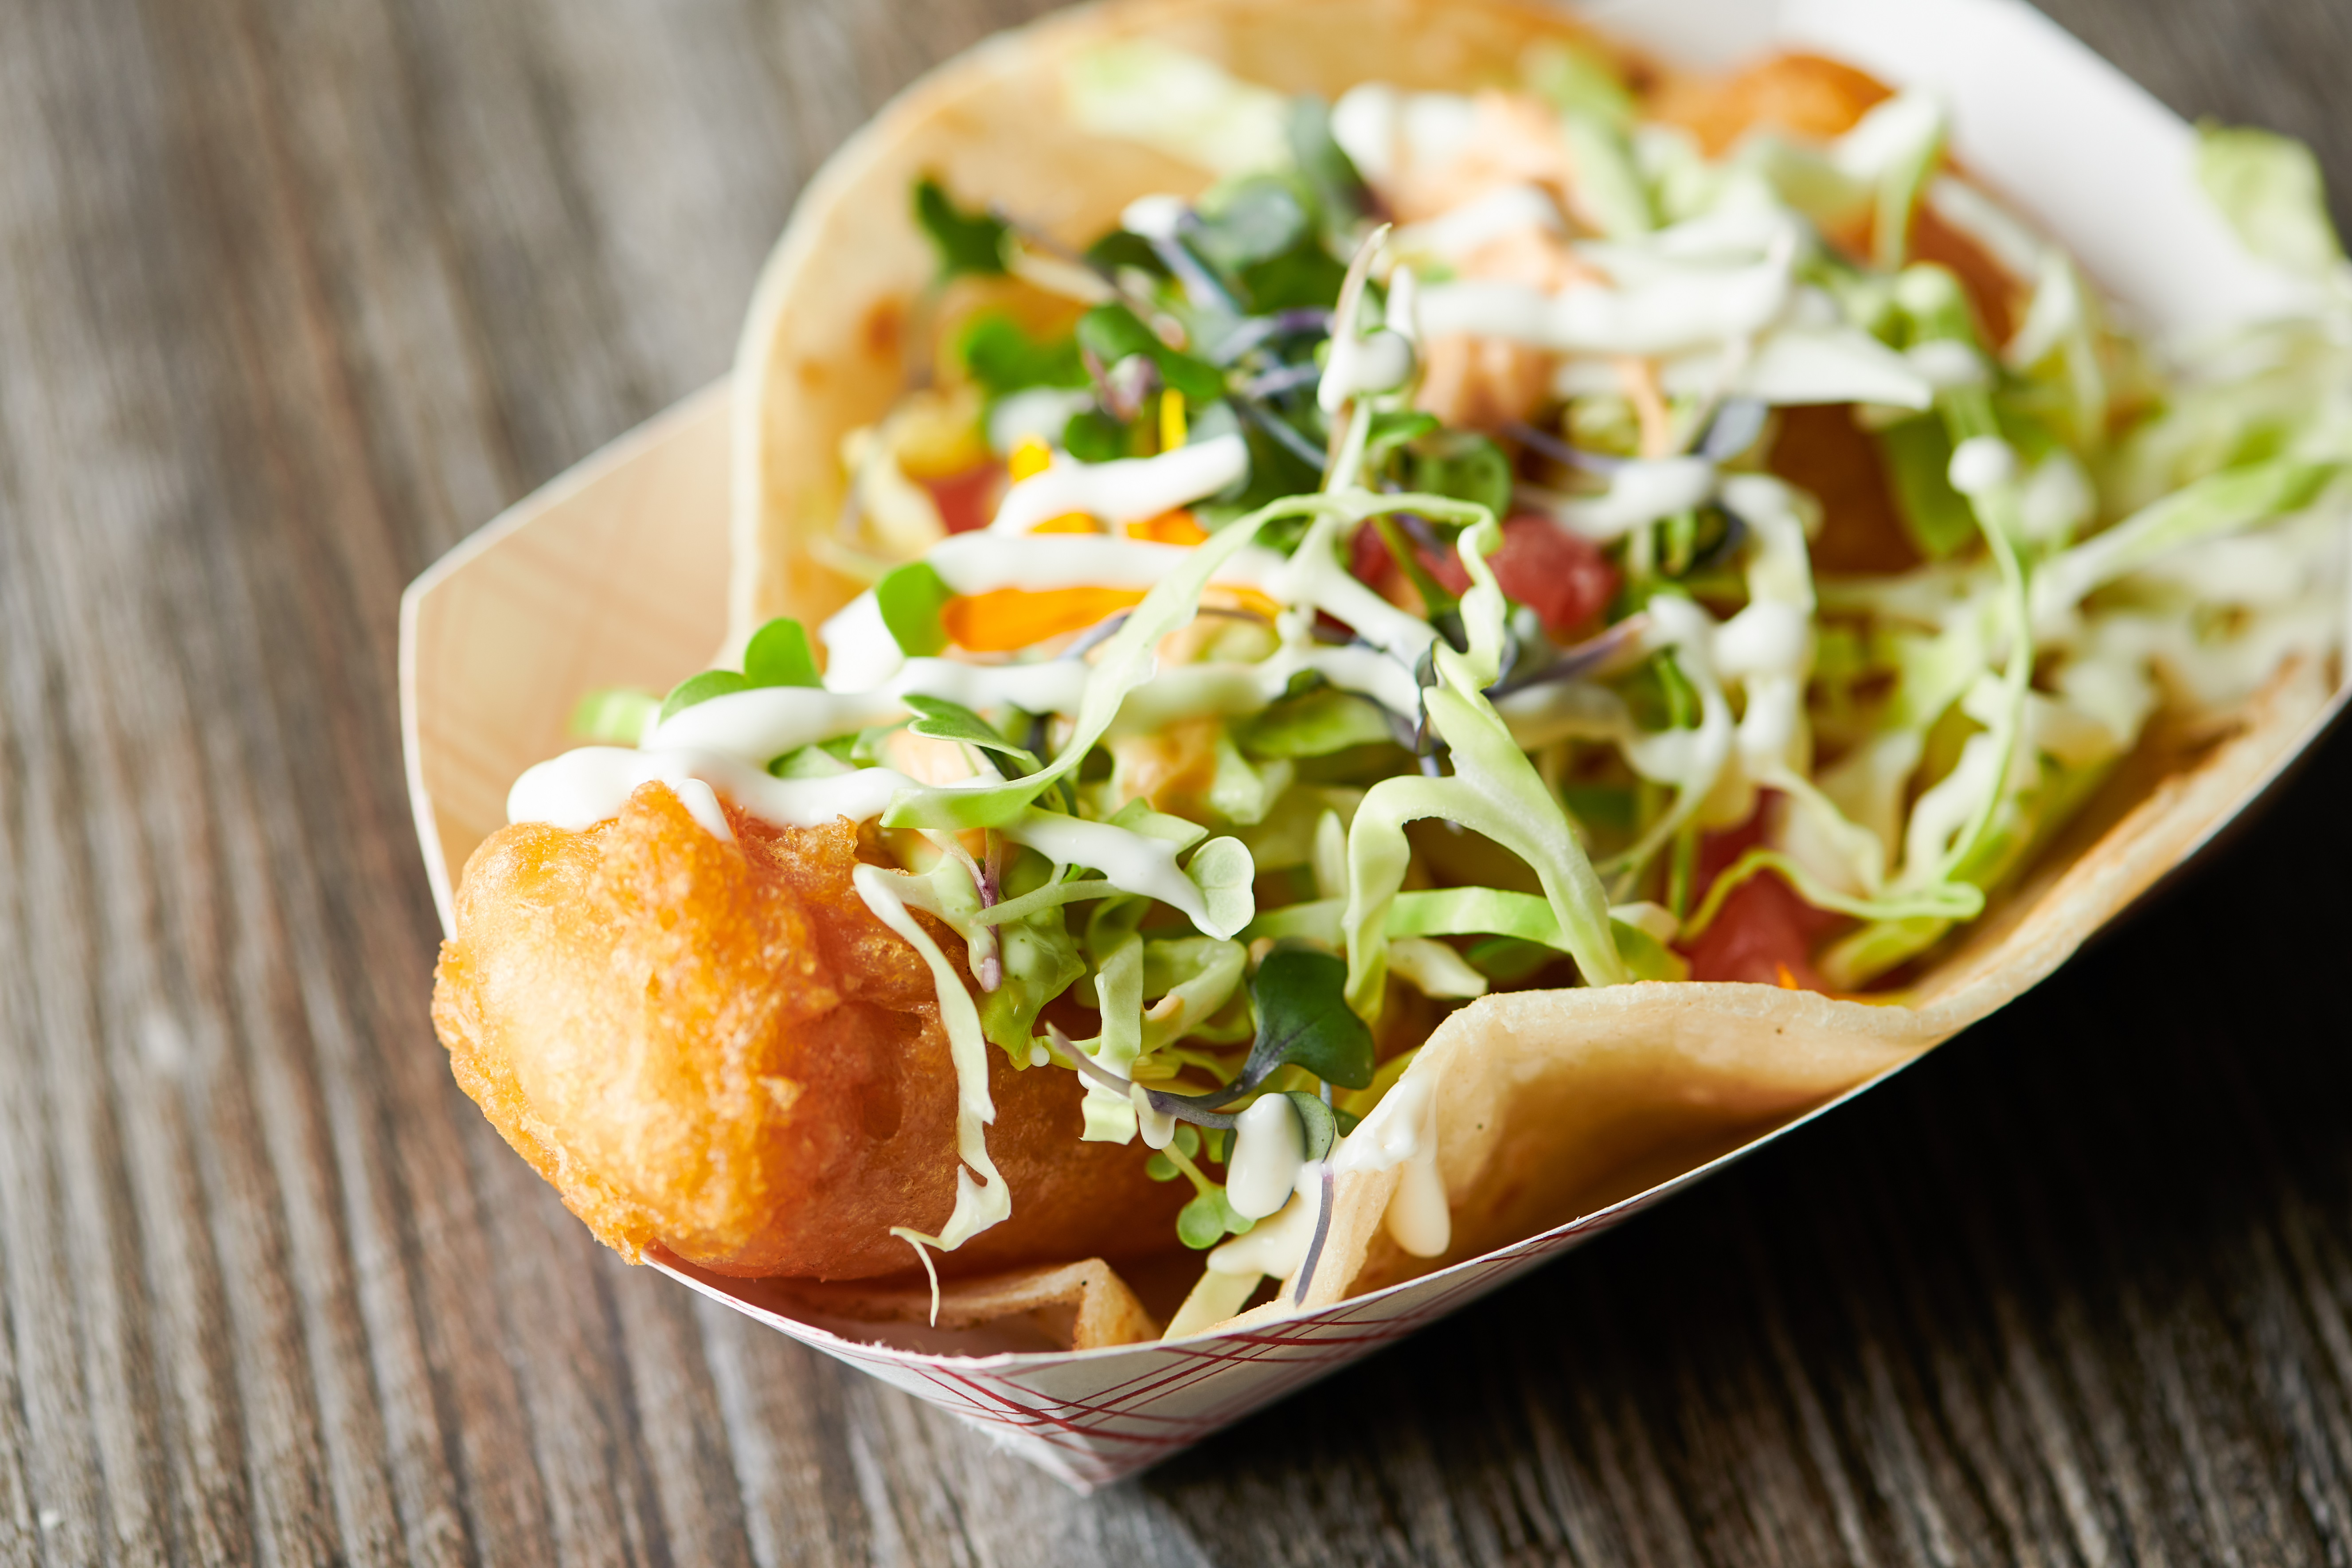 Beer-battered fish taco made with Mike Hess Brewing beer from Quiero Taco in Seaport Village